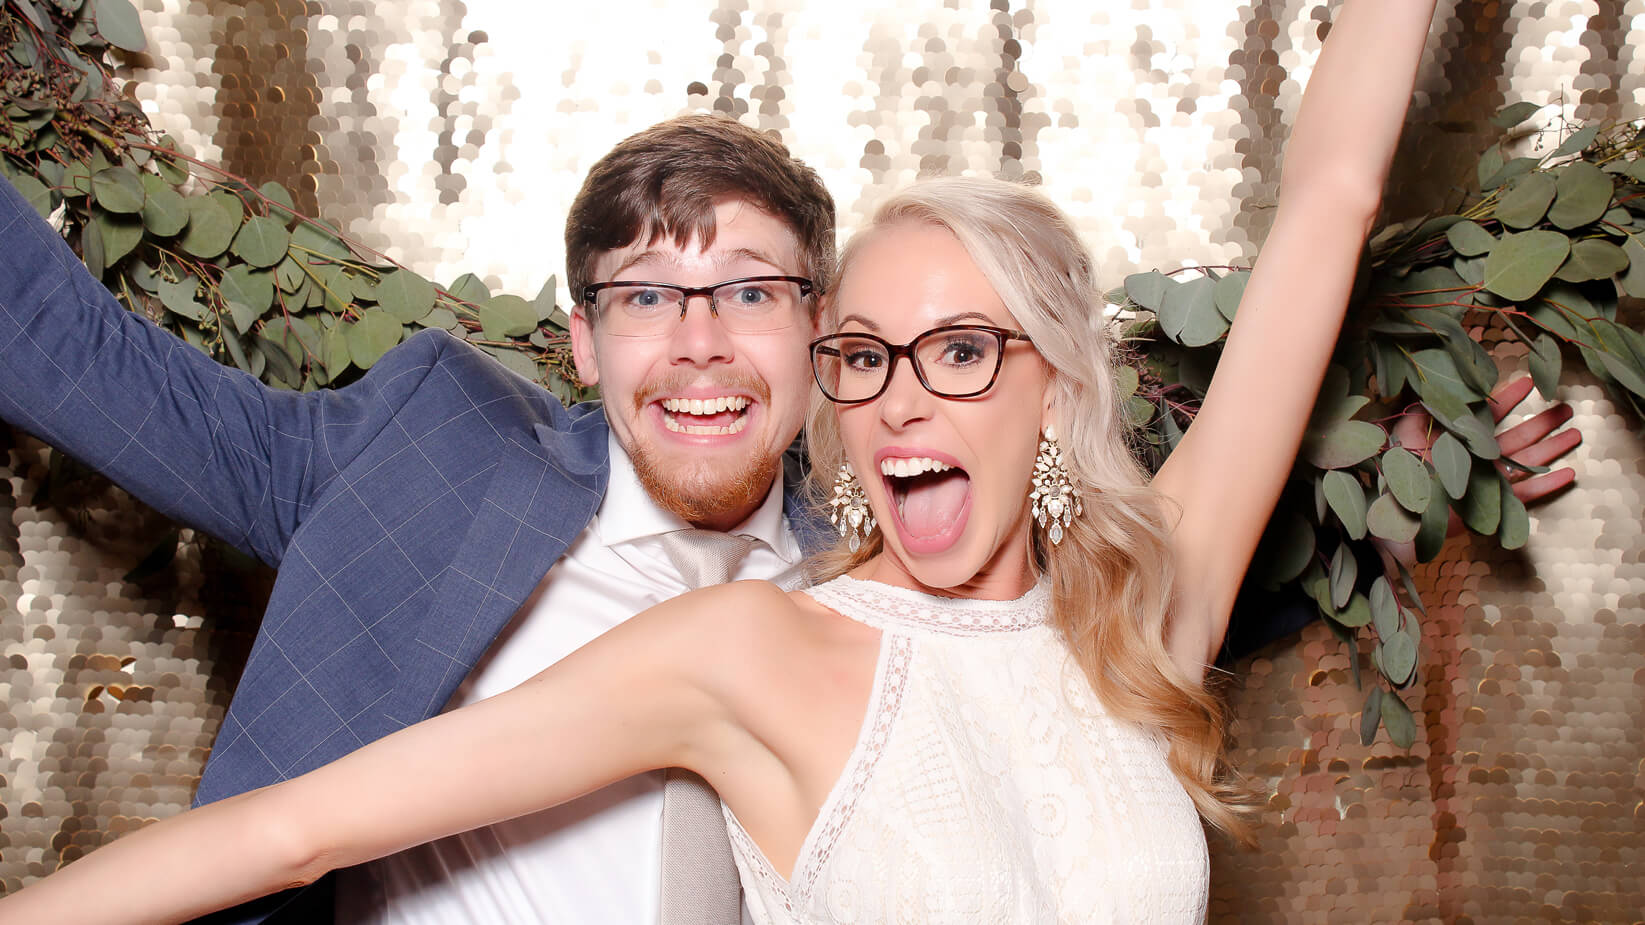 Photo booths for your big day!